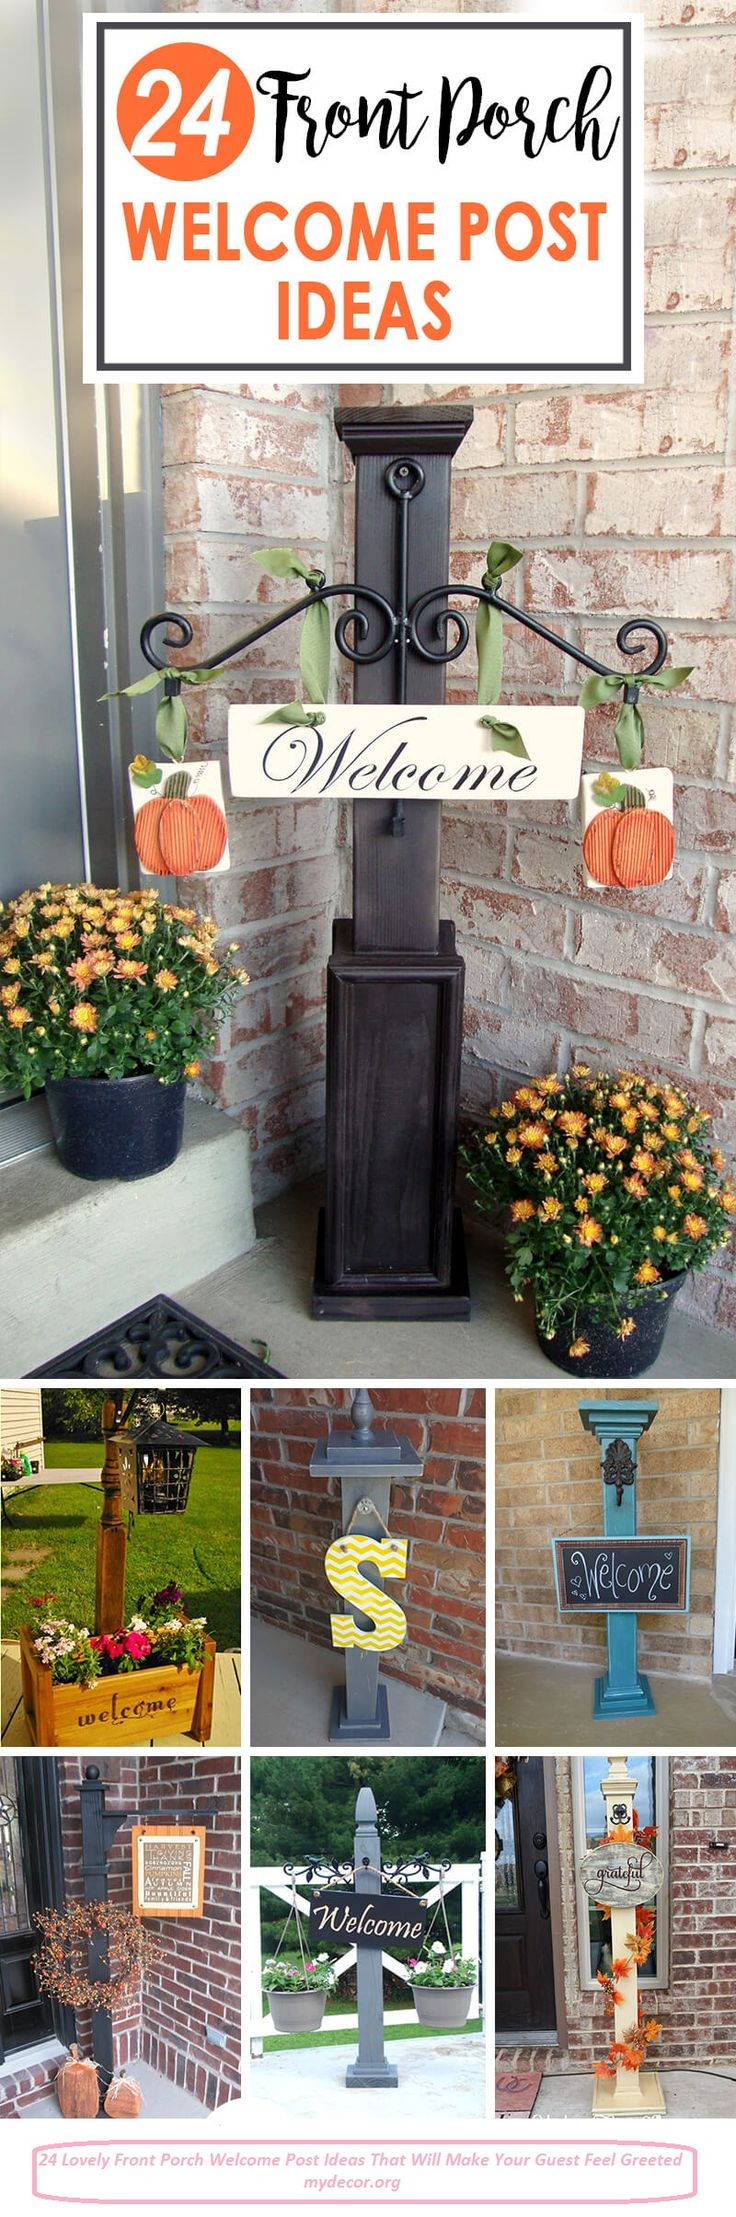 Welcome posts are a great way to enhance the curb appeal of your home and make your front porch or entry way even more inviting. Regardless of your level of DIY skills, it is easy to transform any store-bought post into a unique and versatile accessory for your front porch that will add warmth...